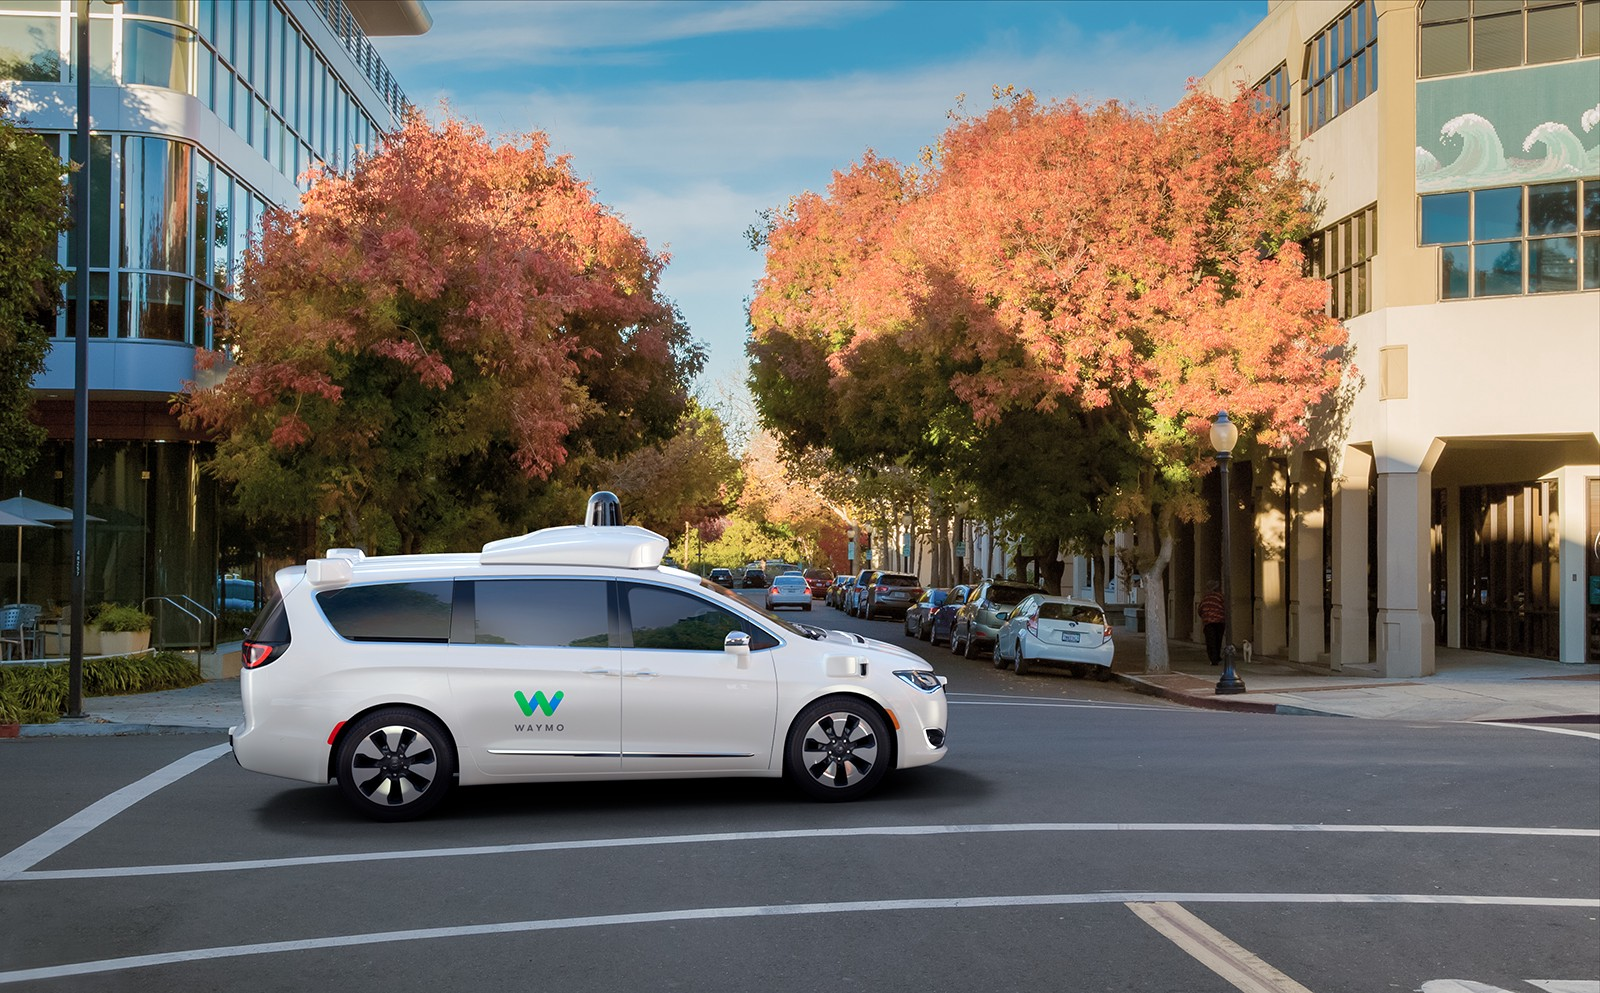 A First Look At Our Waymo Fully Self Driving Chrysler Pacifica Hybrid Minivans